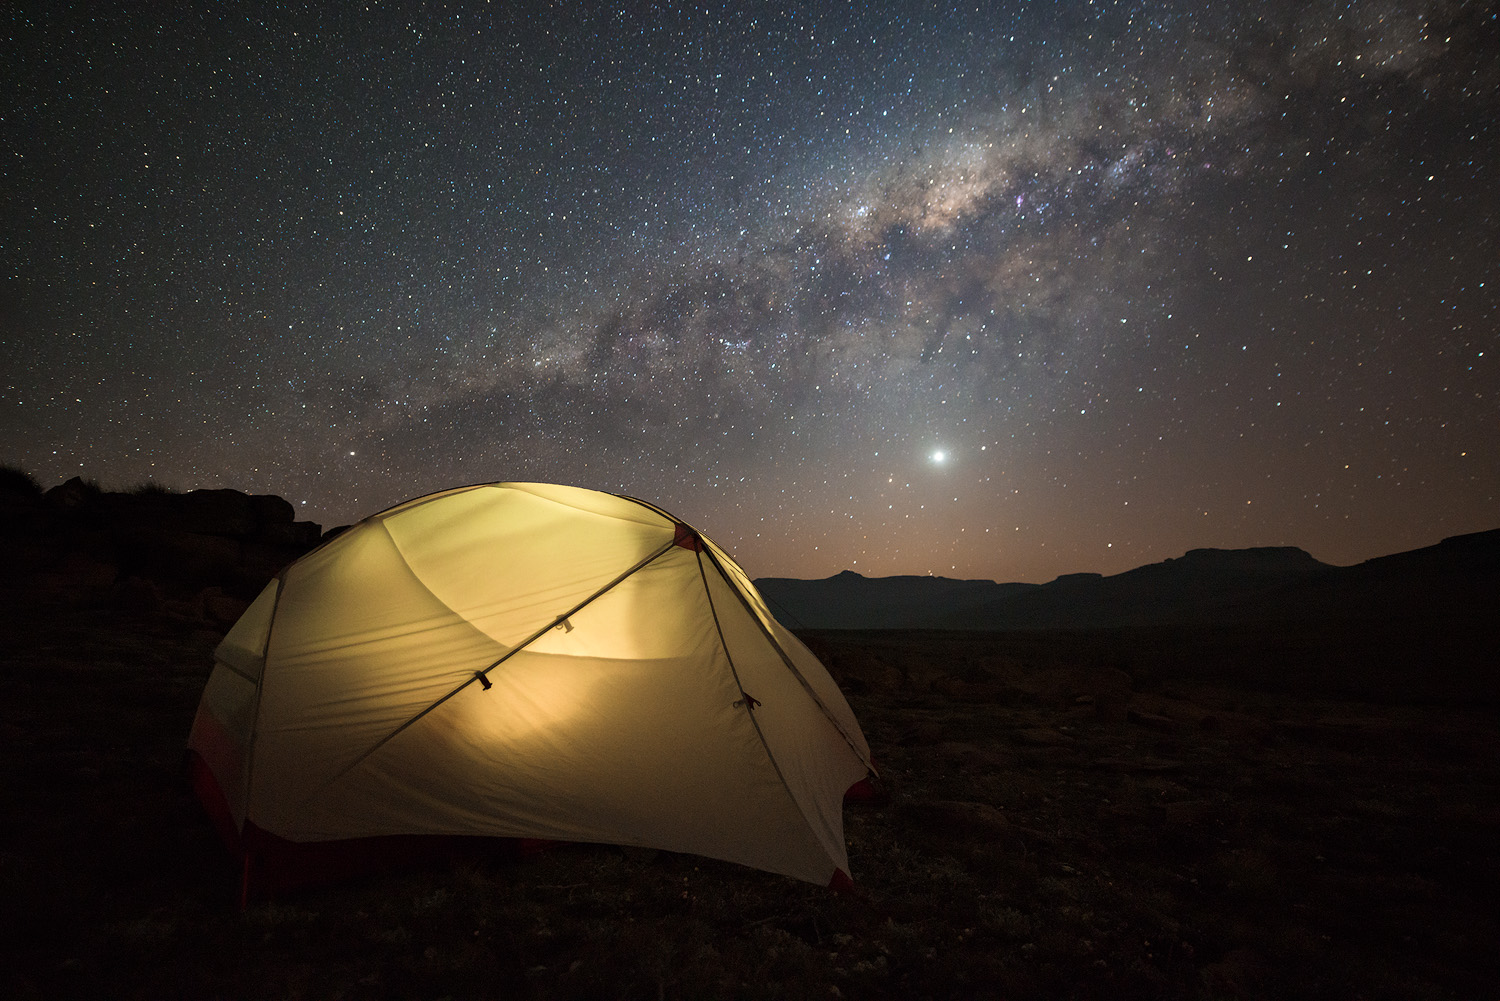 MSR Hubba Hubba NX Milky Way Tent camping adventure Milky Way star night sky nocturnal landscape photo Drakensberg Amphitheatre